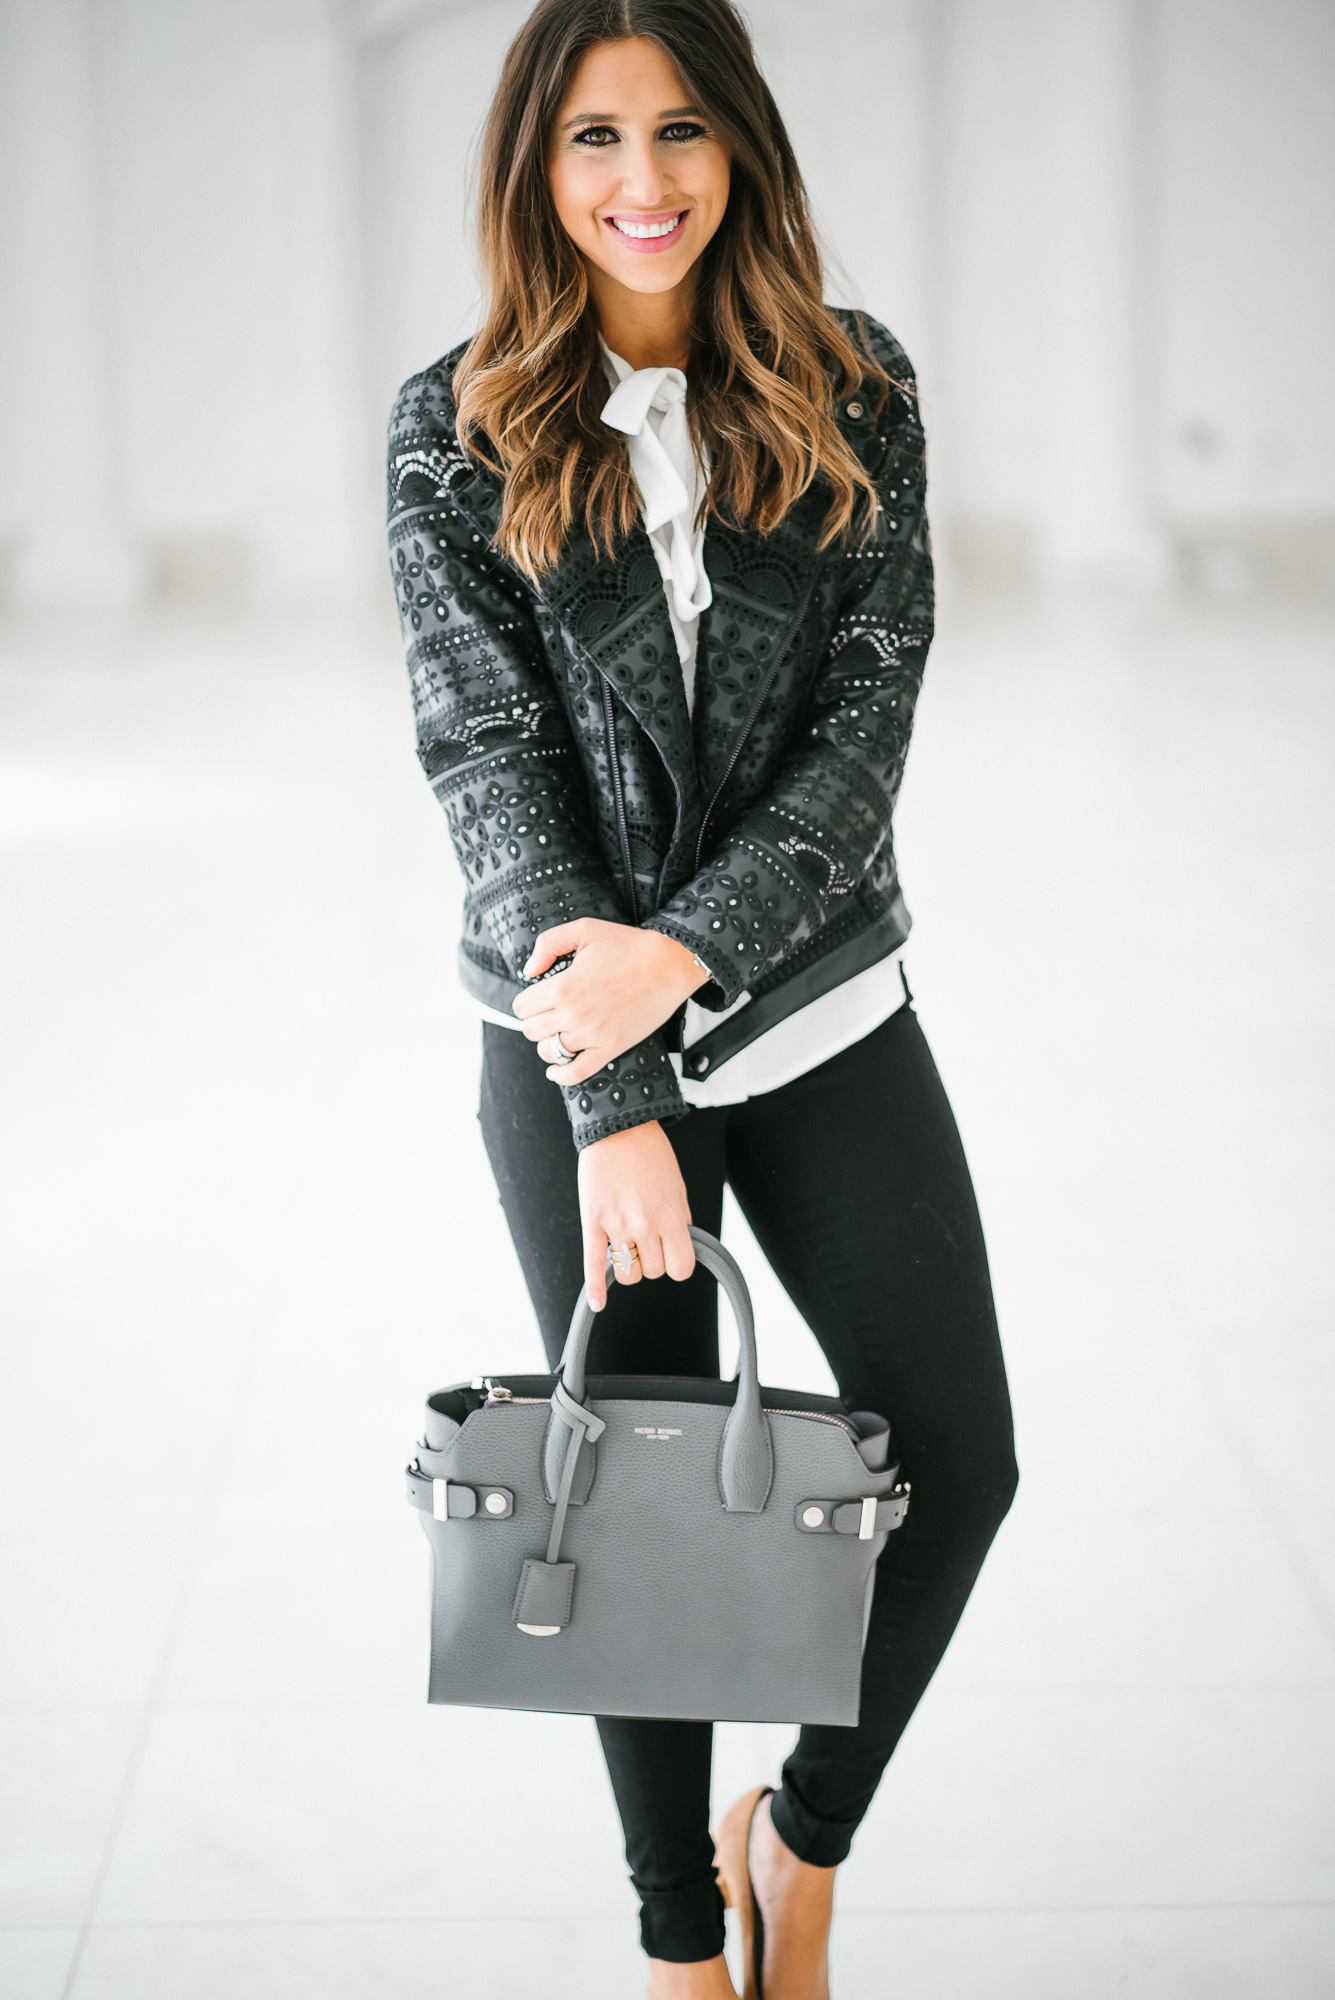 Dress Up Buttercup // A Houston-based fashion travel blog developed to daily inspire your own personal style by Dede Raad | Lace and Leather